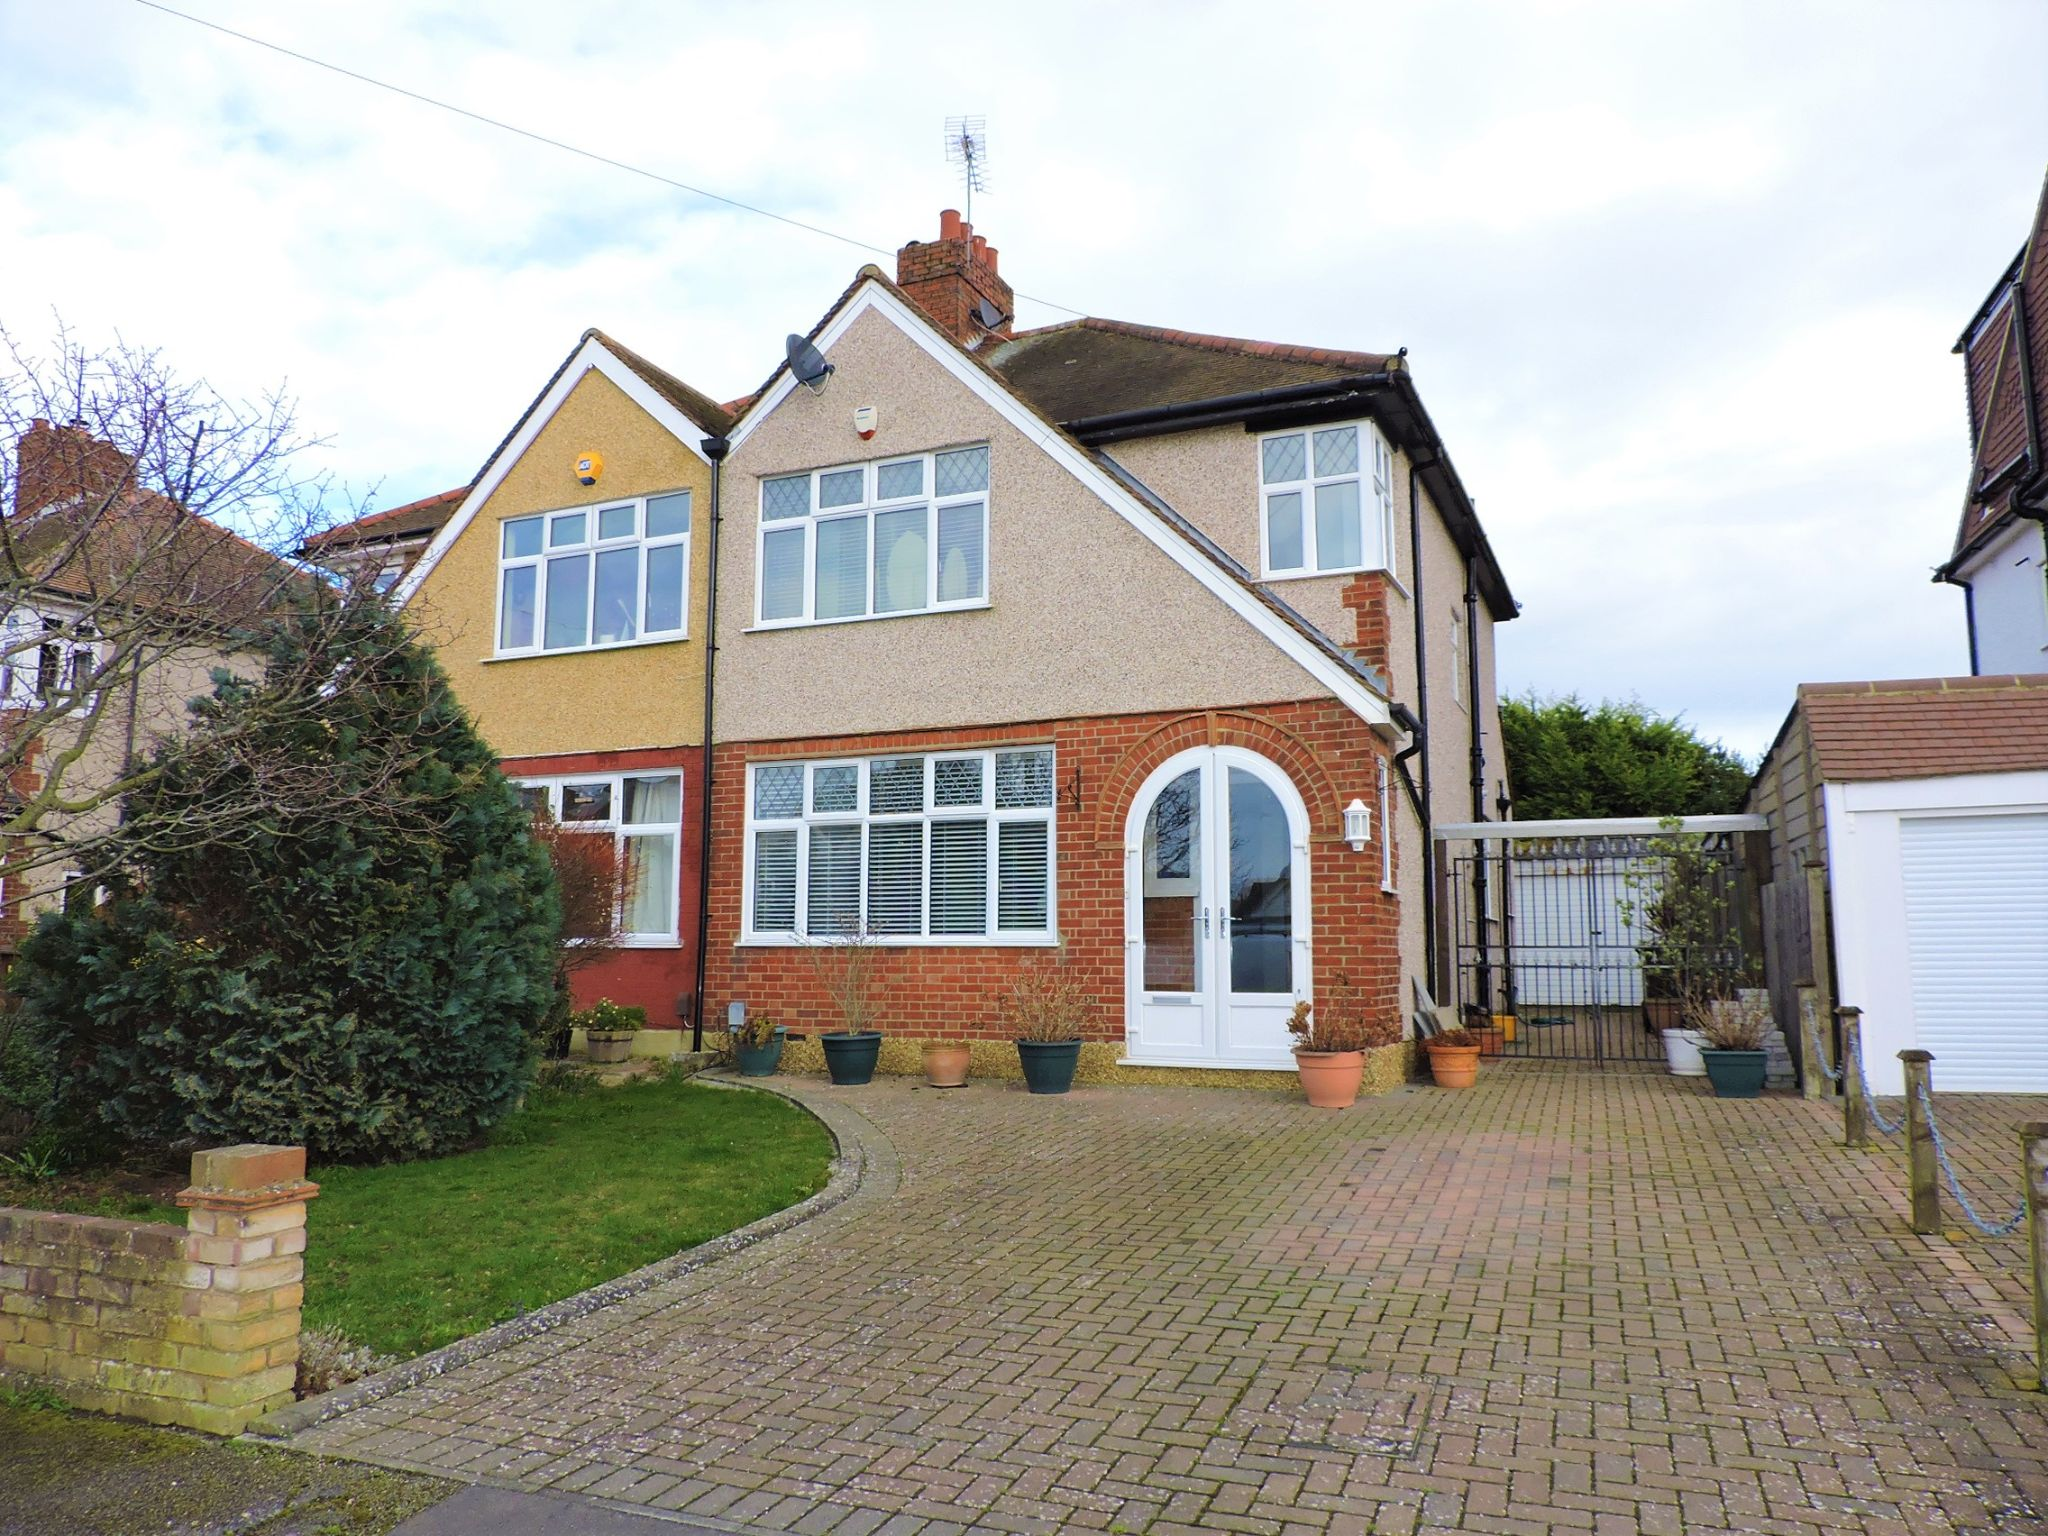 3 bedroom semi-detached house SSTC in Epsom - Property photograph